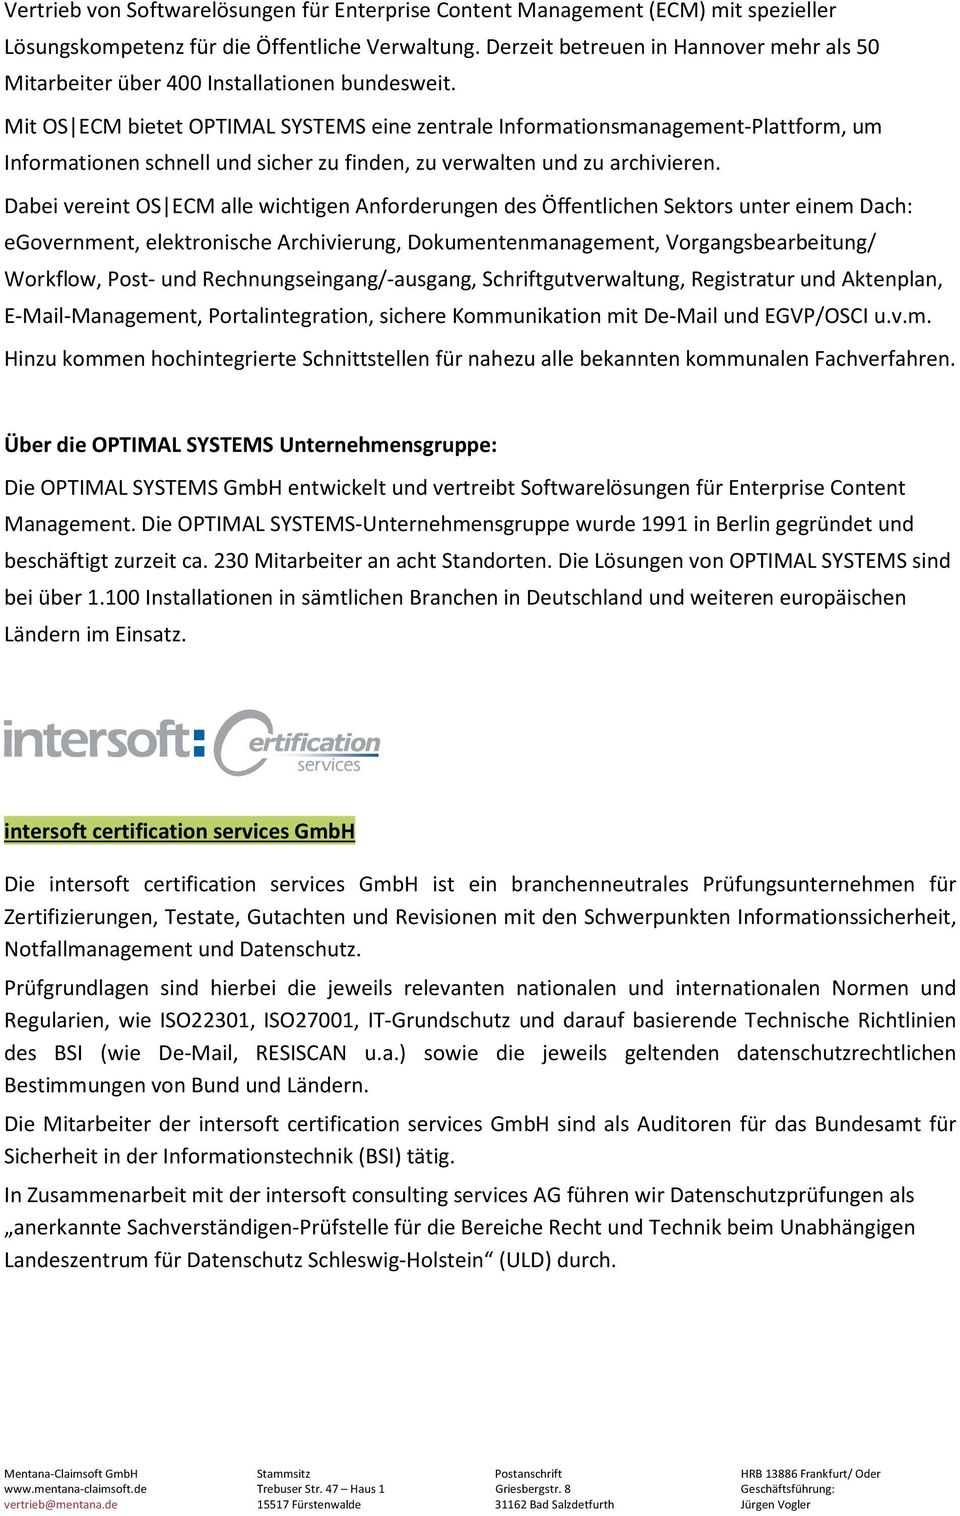 Mit OS ECM bietet OPTIMAL SYSTEMS eine zentrale Informationsmanagement-Plattform, um Informationen schnell und sicher zu finden, zu verwalten und zu archivieren.